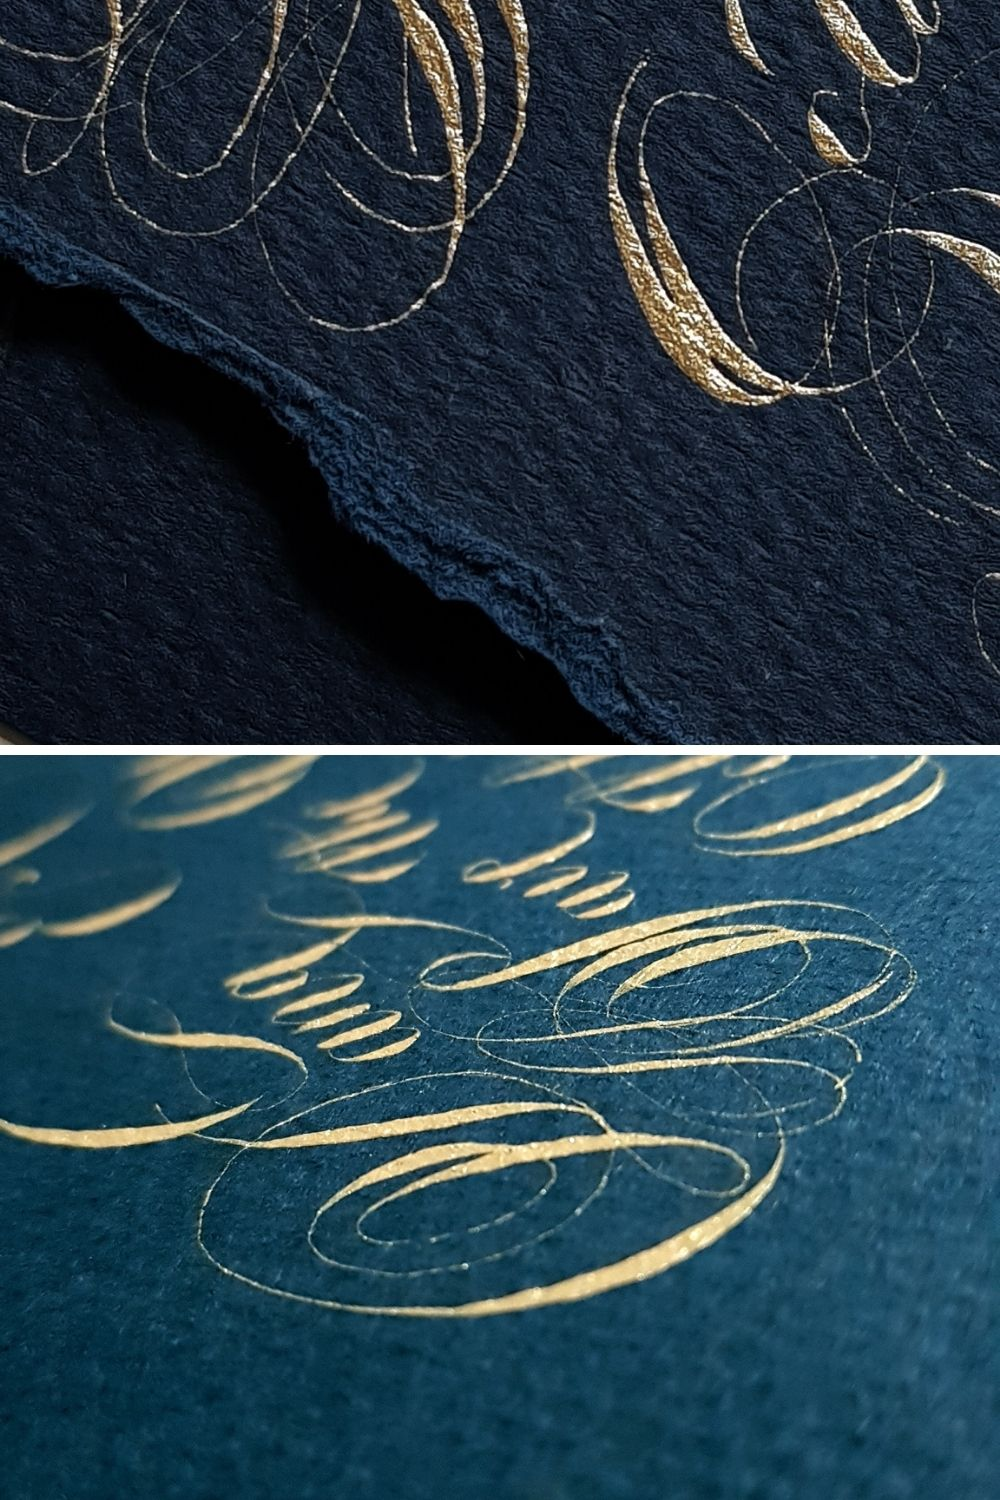 Fine art wedding invitations with deep cobalt blue with gold calligraphy for a small destination wedding in France